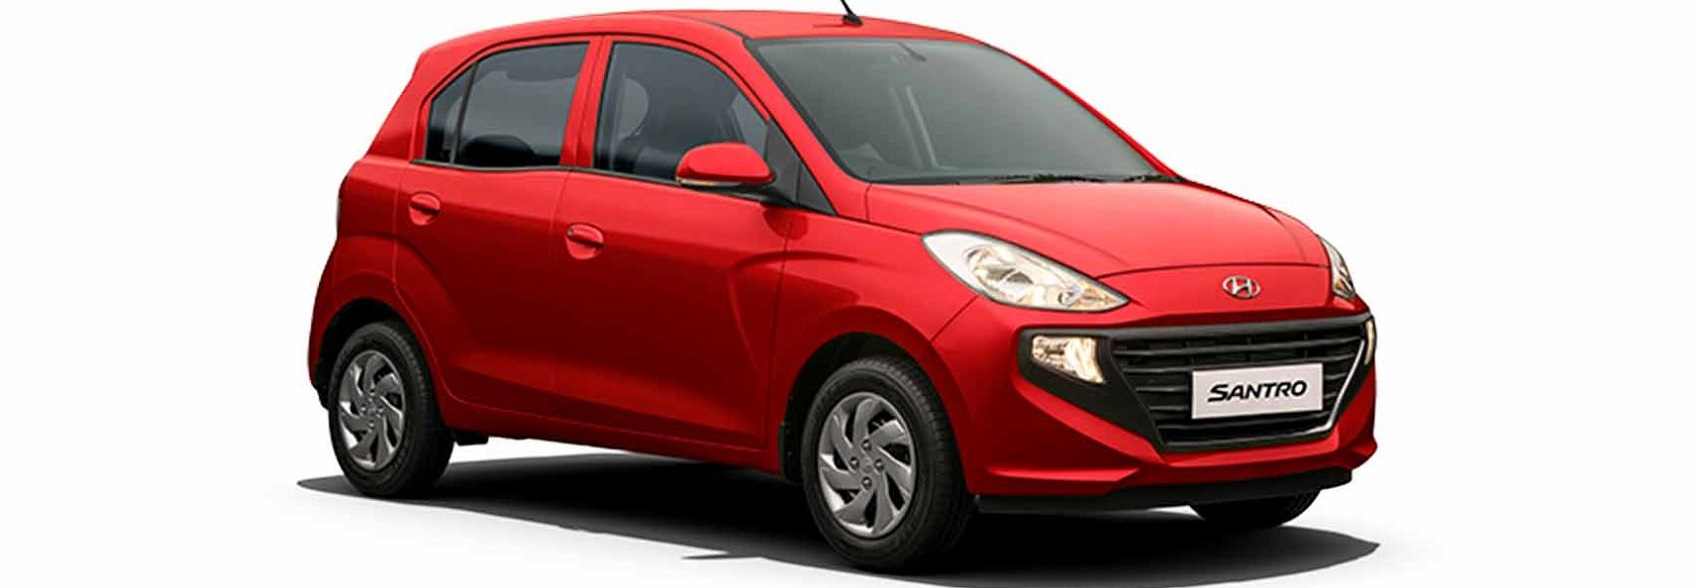 hyundai-santro-red-low-maintenance-cost